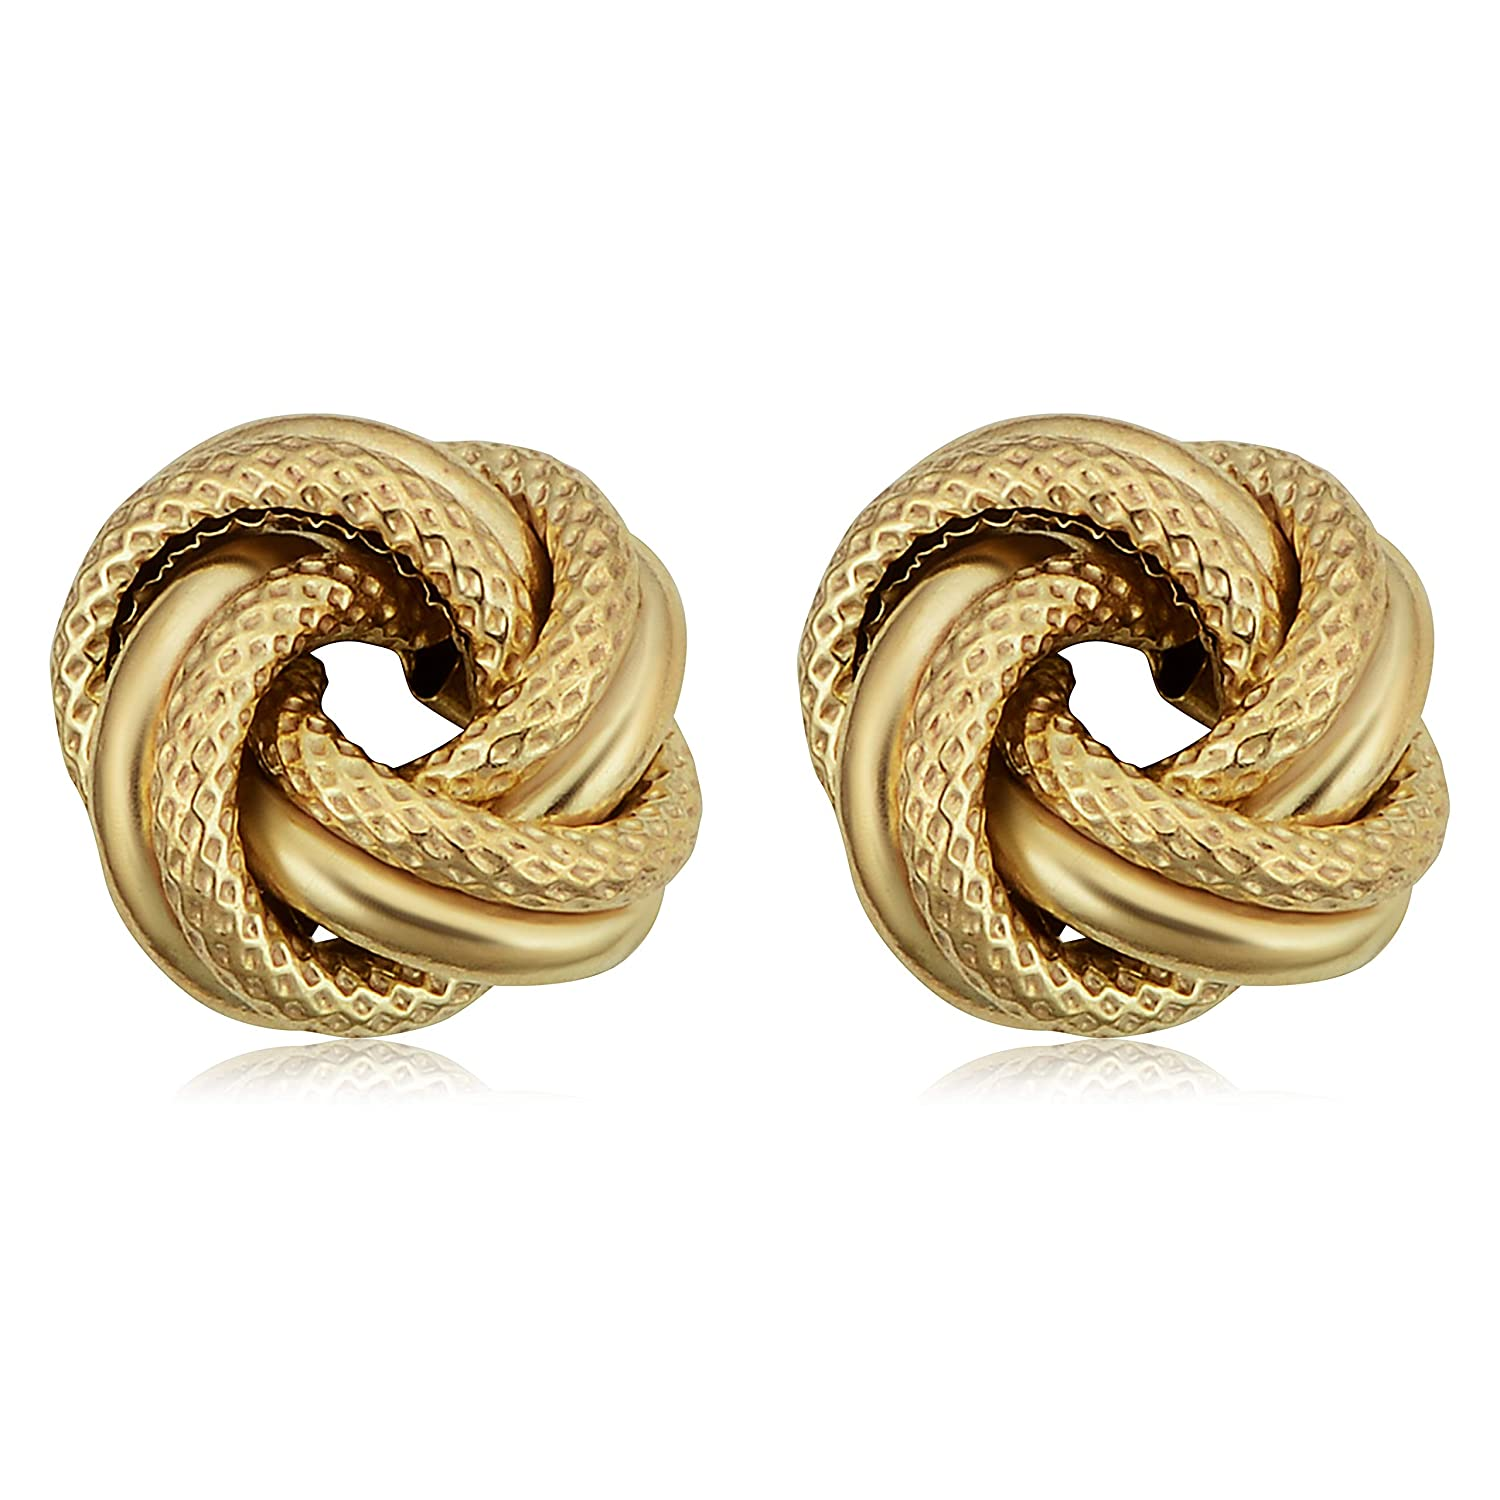 c5840781f9192 10k Yellow Gold Textured Love Knot Stud Earrings